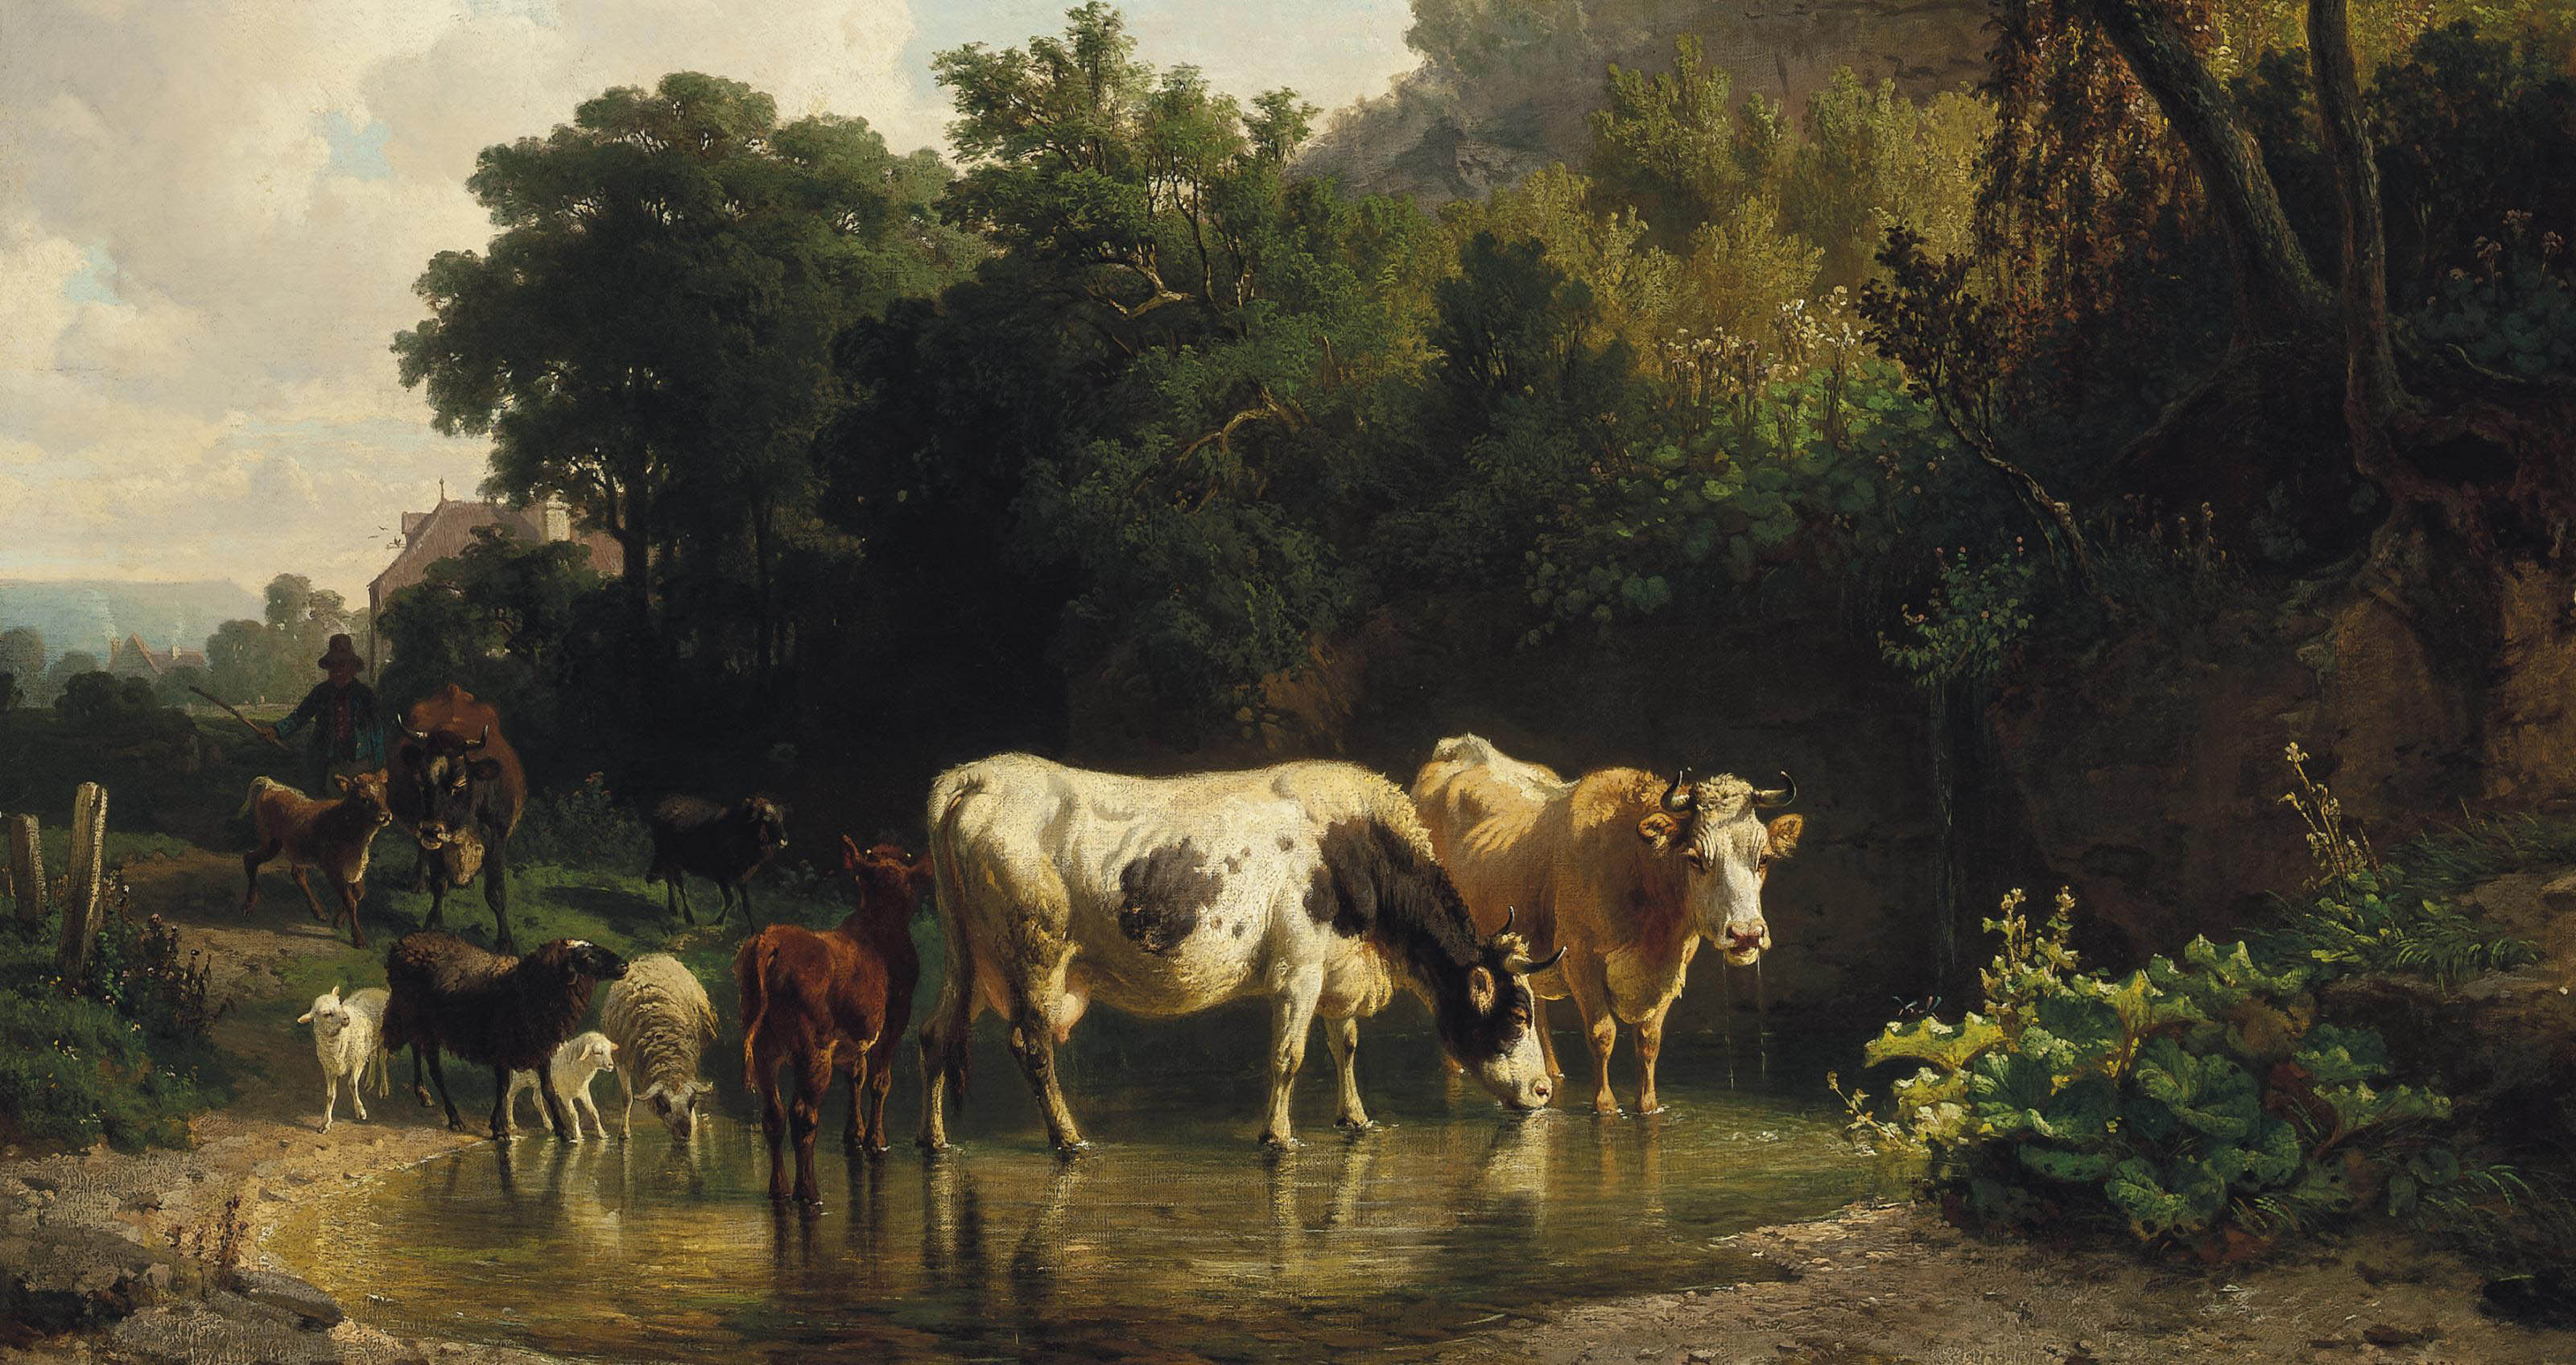 Watering livestock at the stream